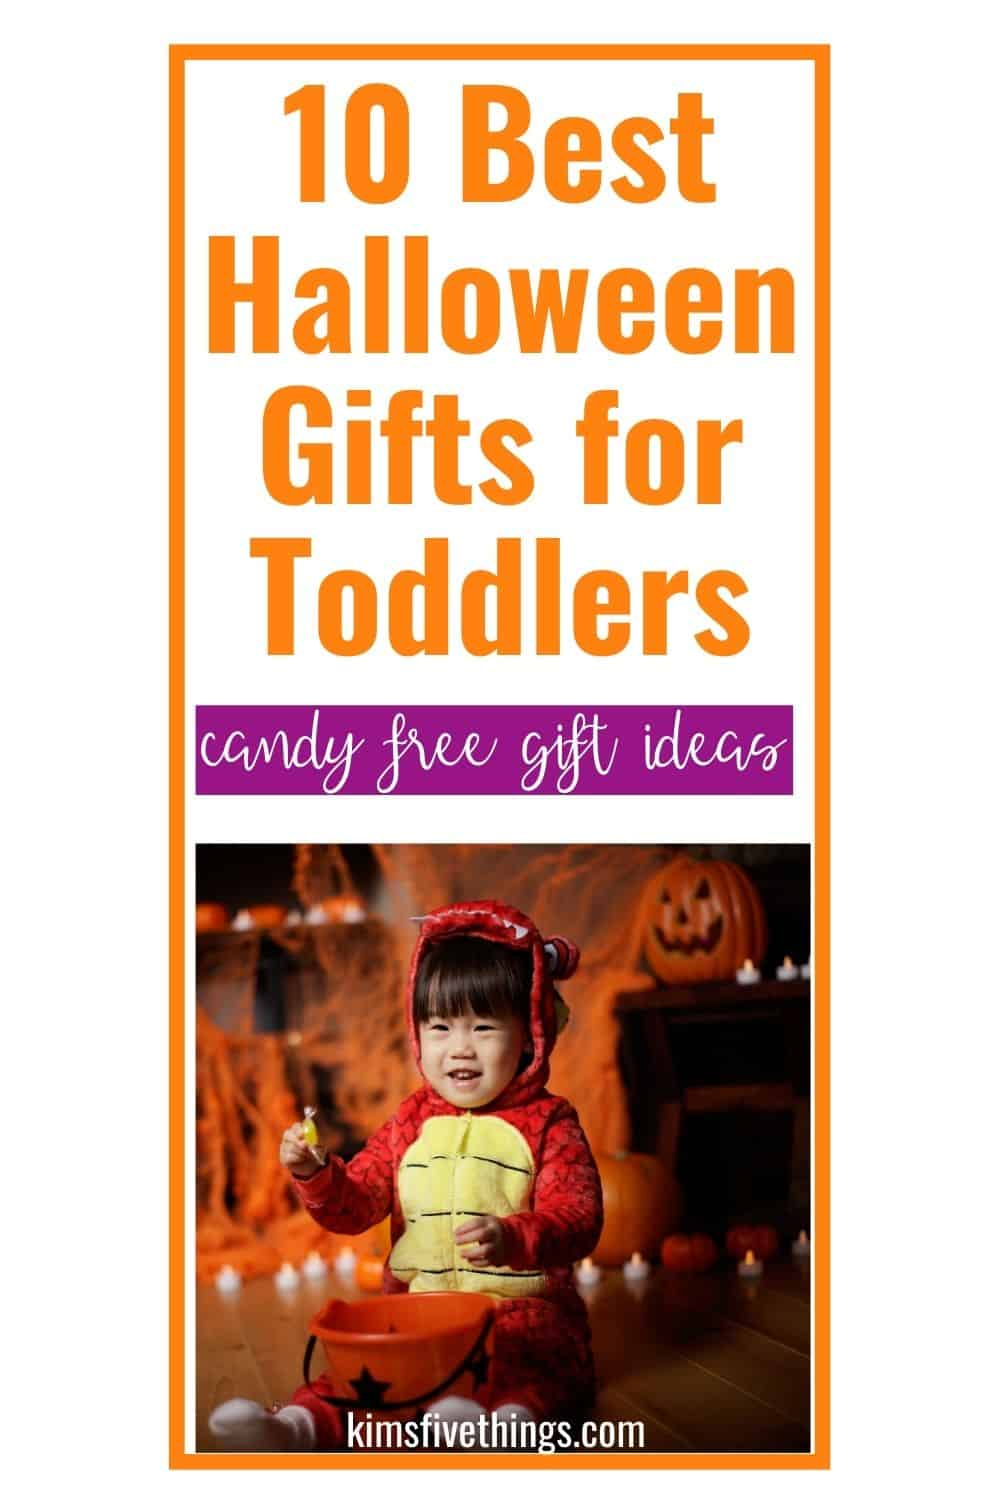 10 Best Halloween Gift Ideas for Toddlers 2021 | Kims Home Ideas